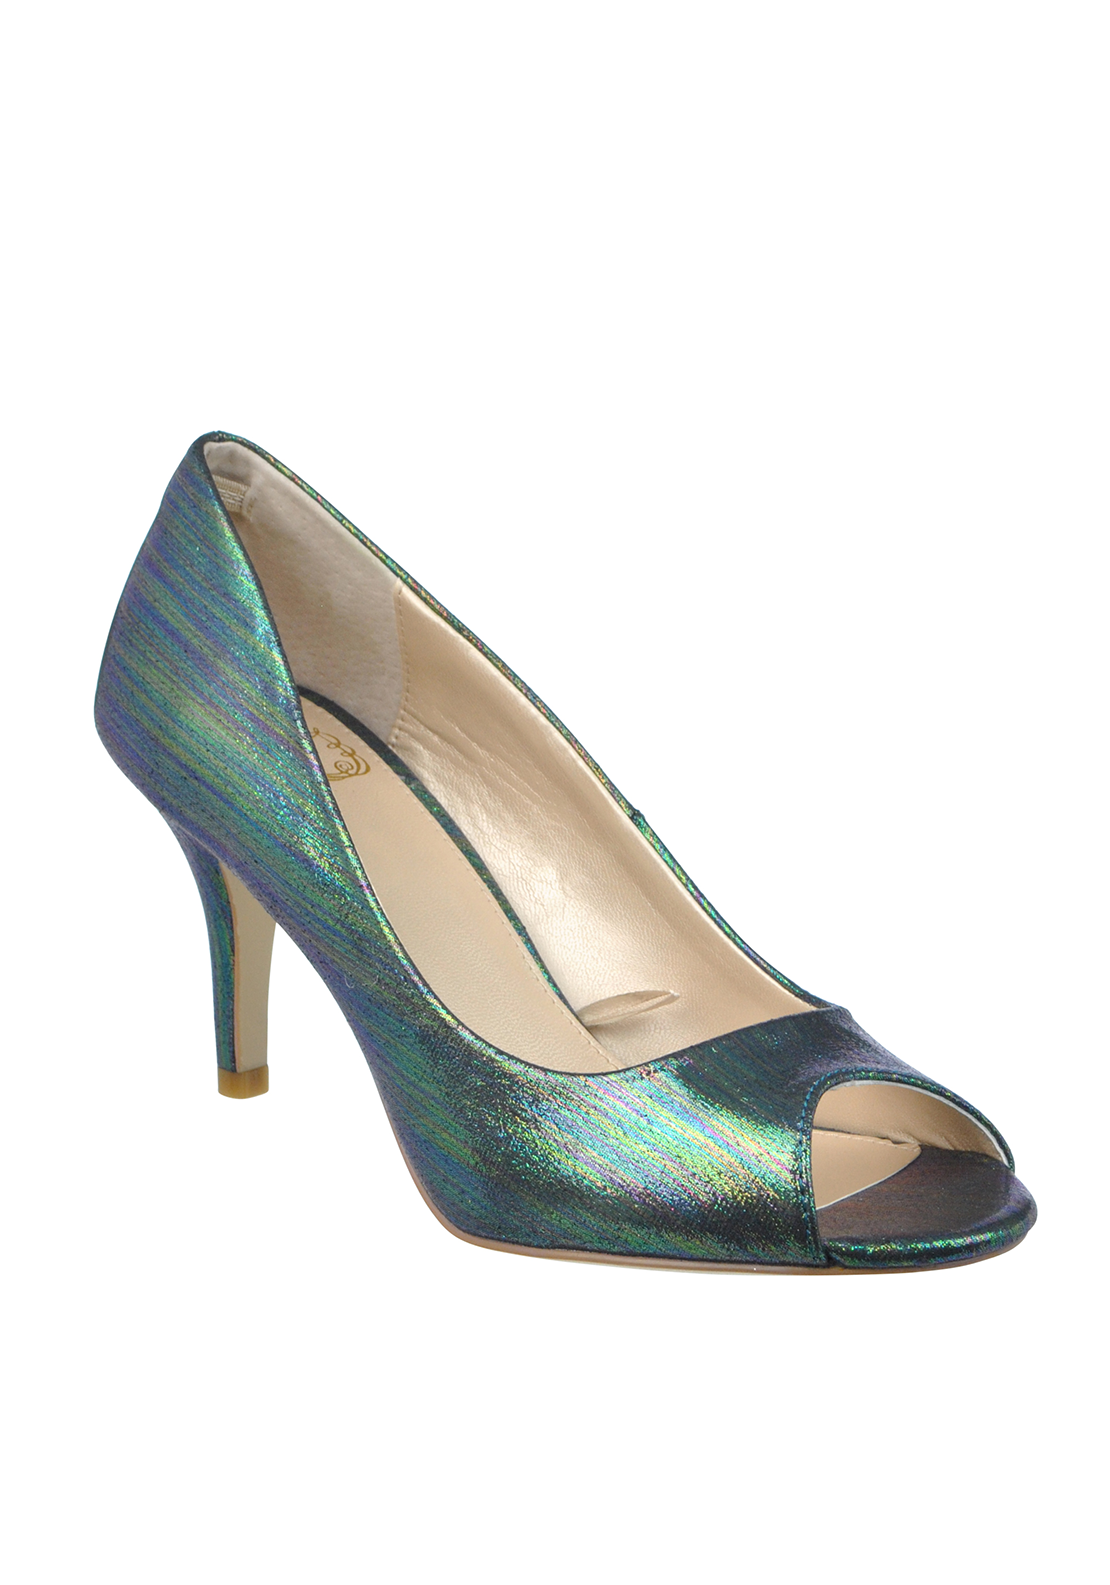 Lotus Hallmark Metallic Striped Peep Toe Heeled Shoes, Green